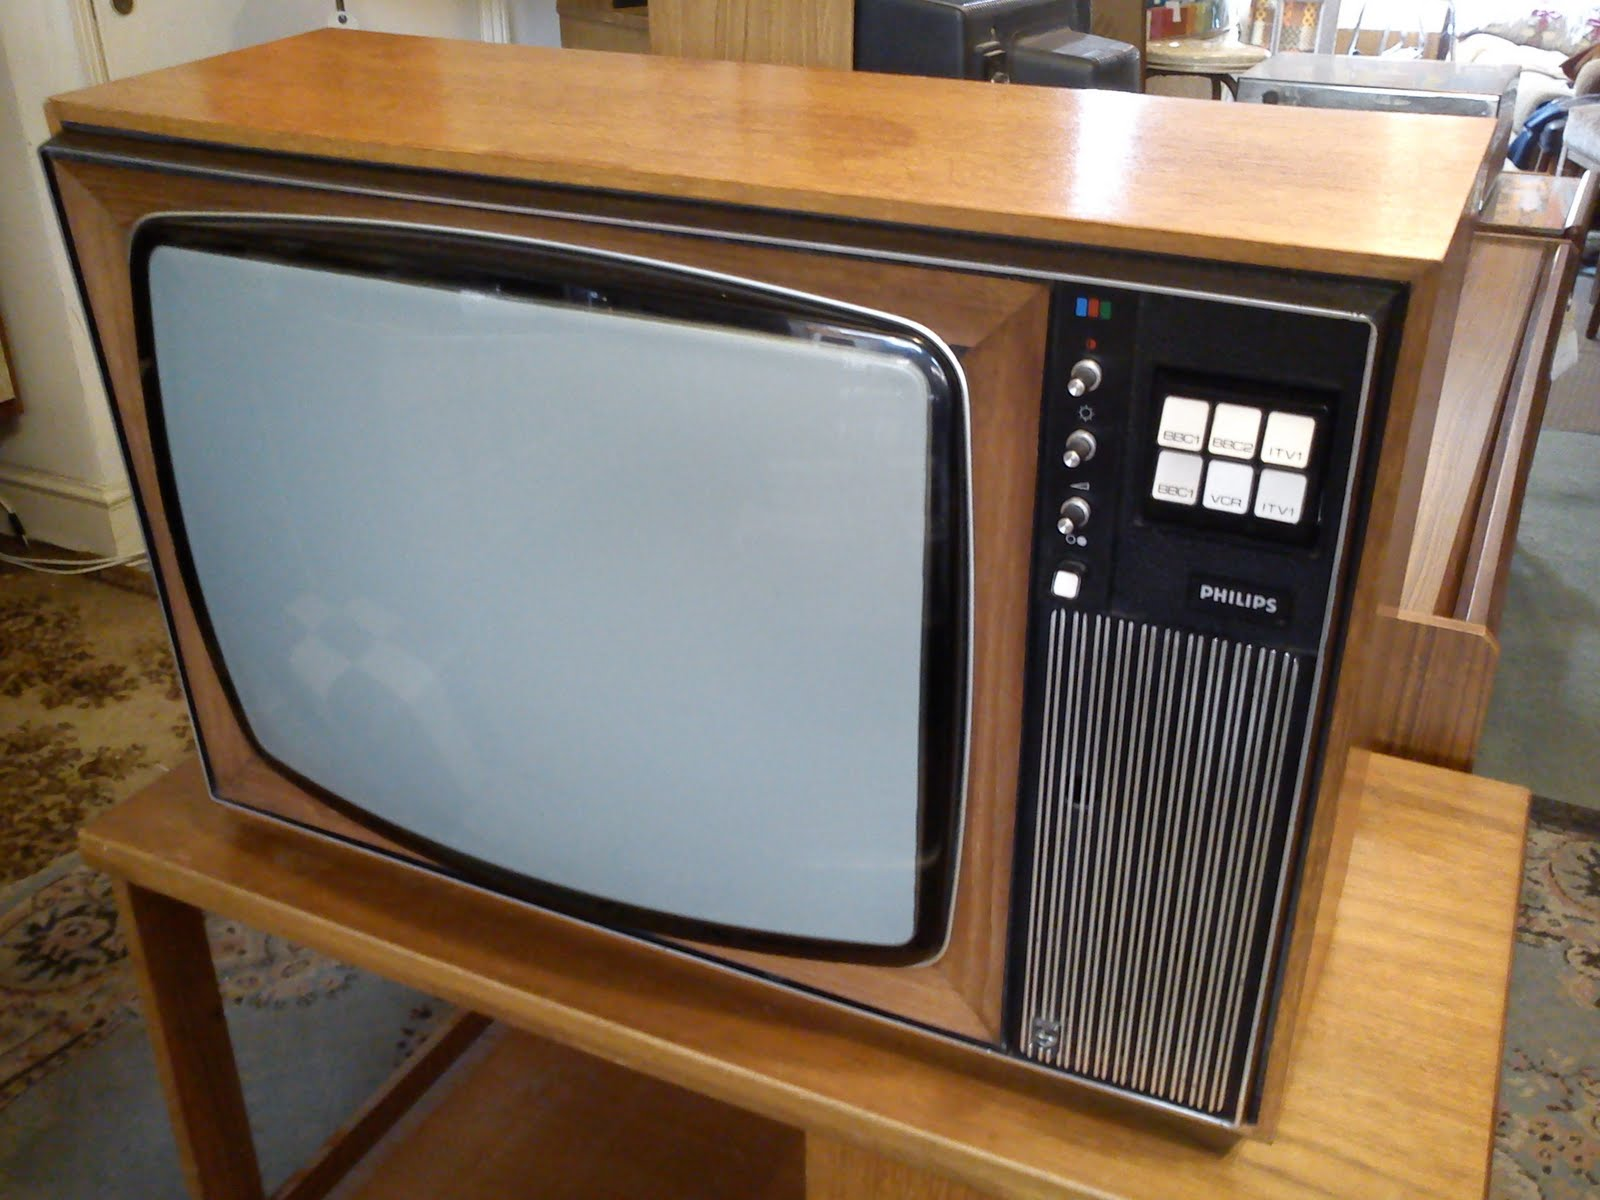 Tv Sets From 1970s: Philips Television Set 1970s